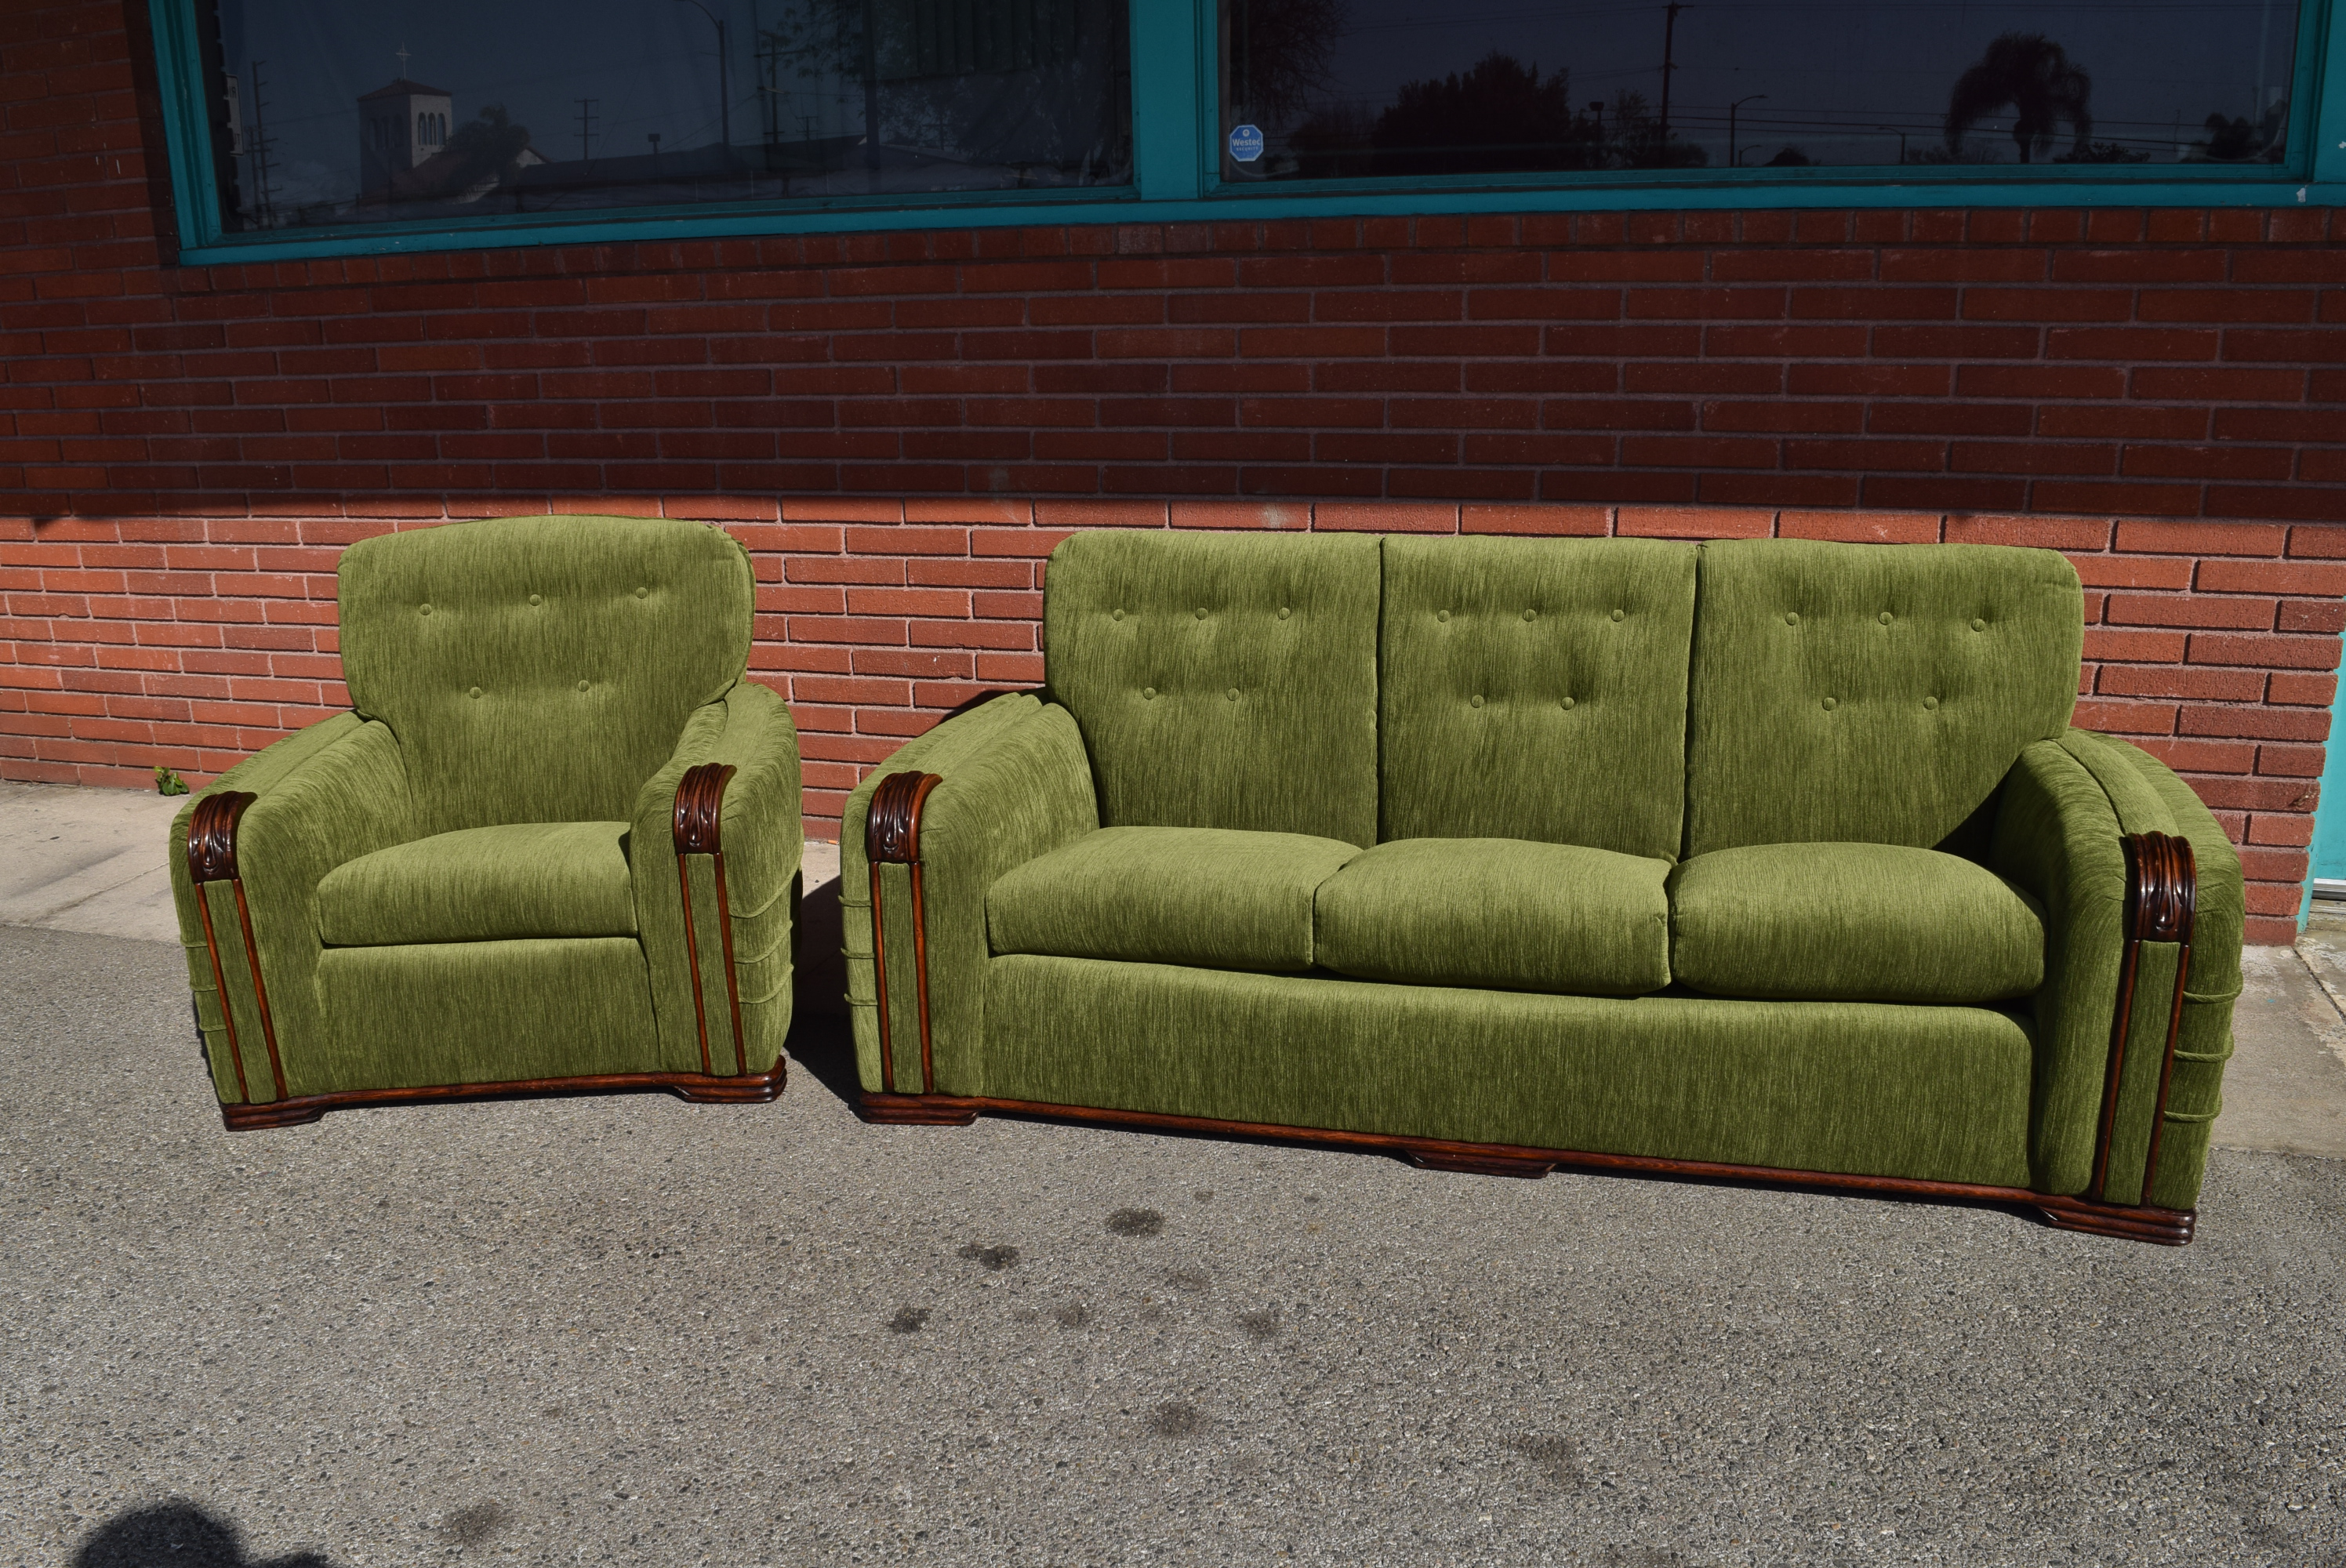 Vintage Art Deco Modern Green Velvet Sofa U0026 Chair   A Pair   Image 13 Of